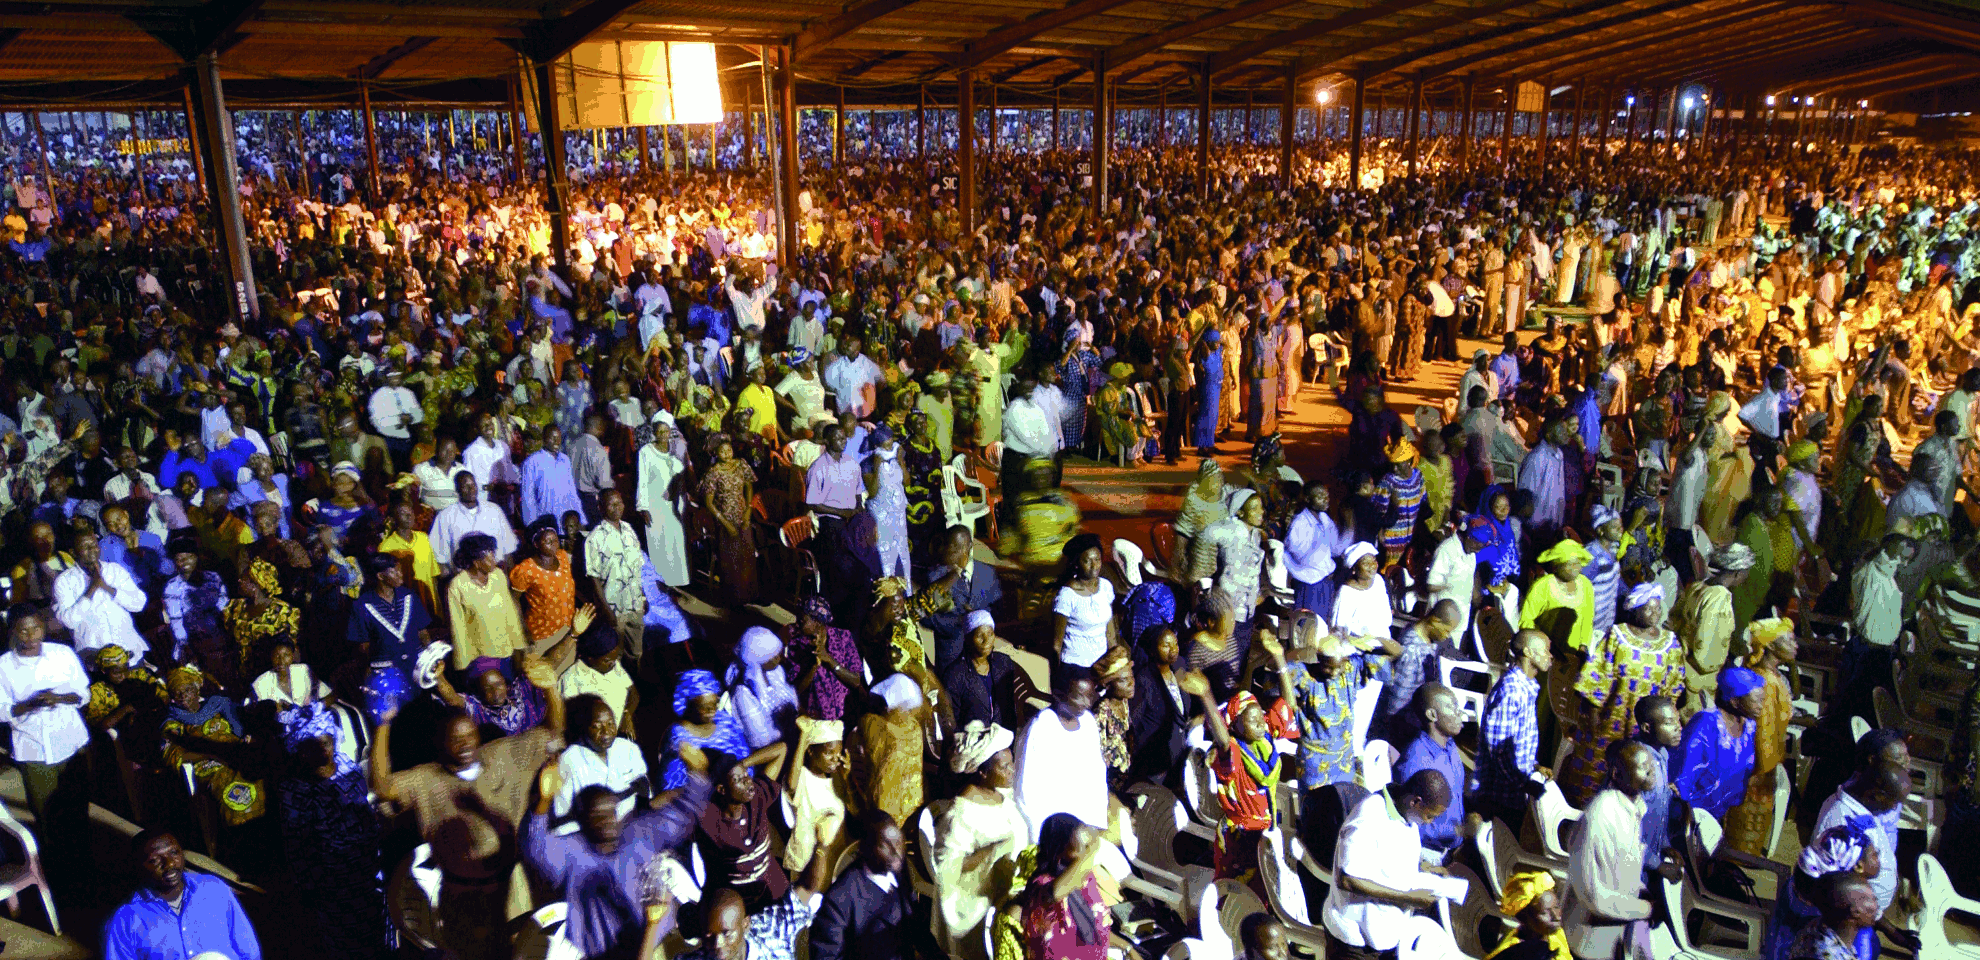 V12_C20_100,000_All_Night_Pentecostal_Service_in_Lagos_Nigeria